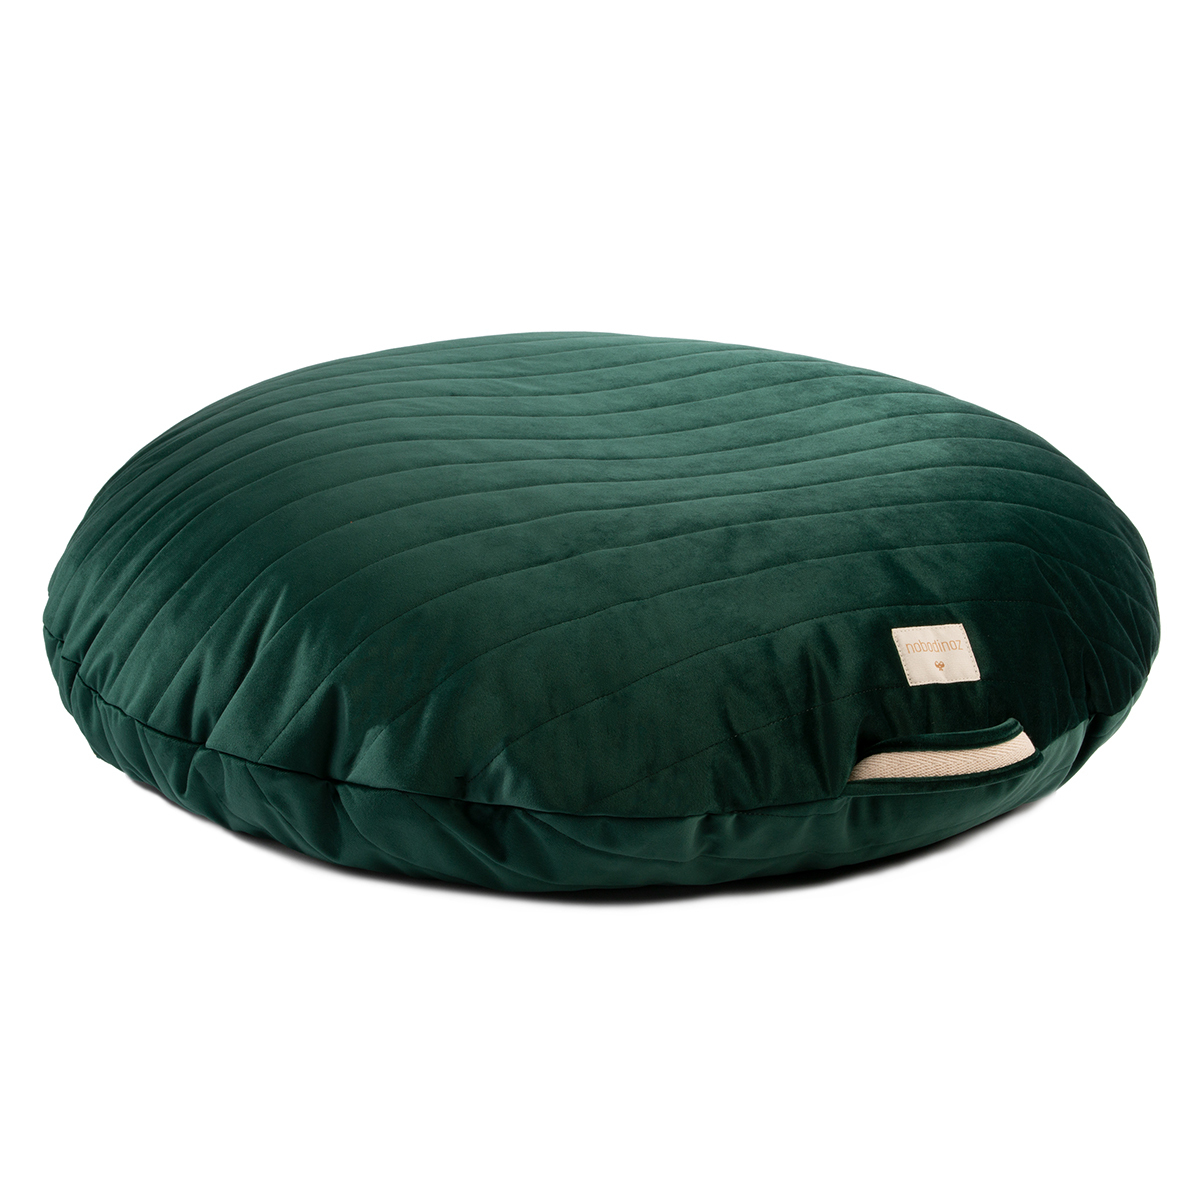 Fauteuil Pouf Sahara Velvet - Jungle Green Pouf Sahara Velvet - Jungle Green